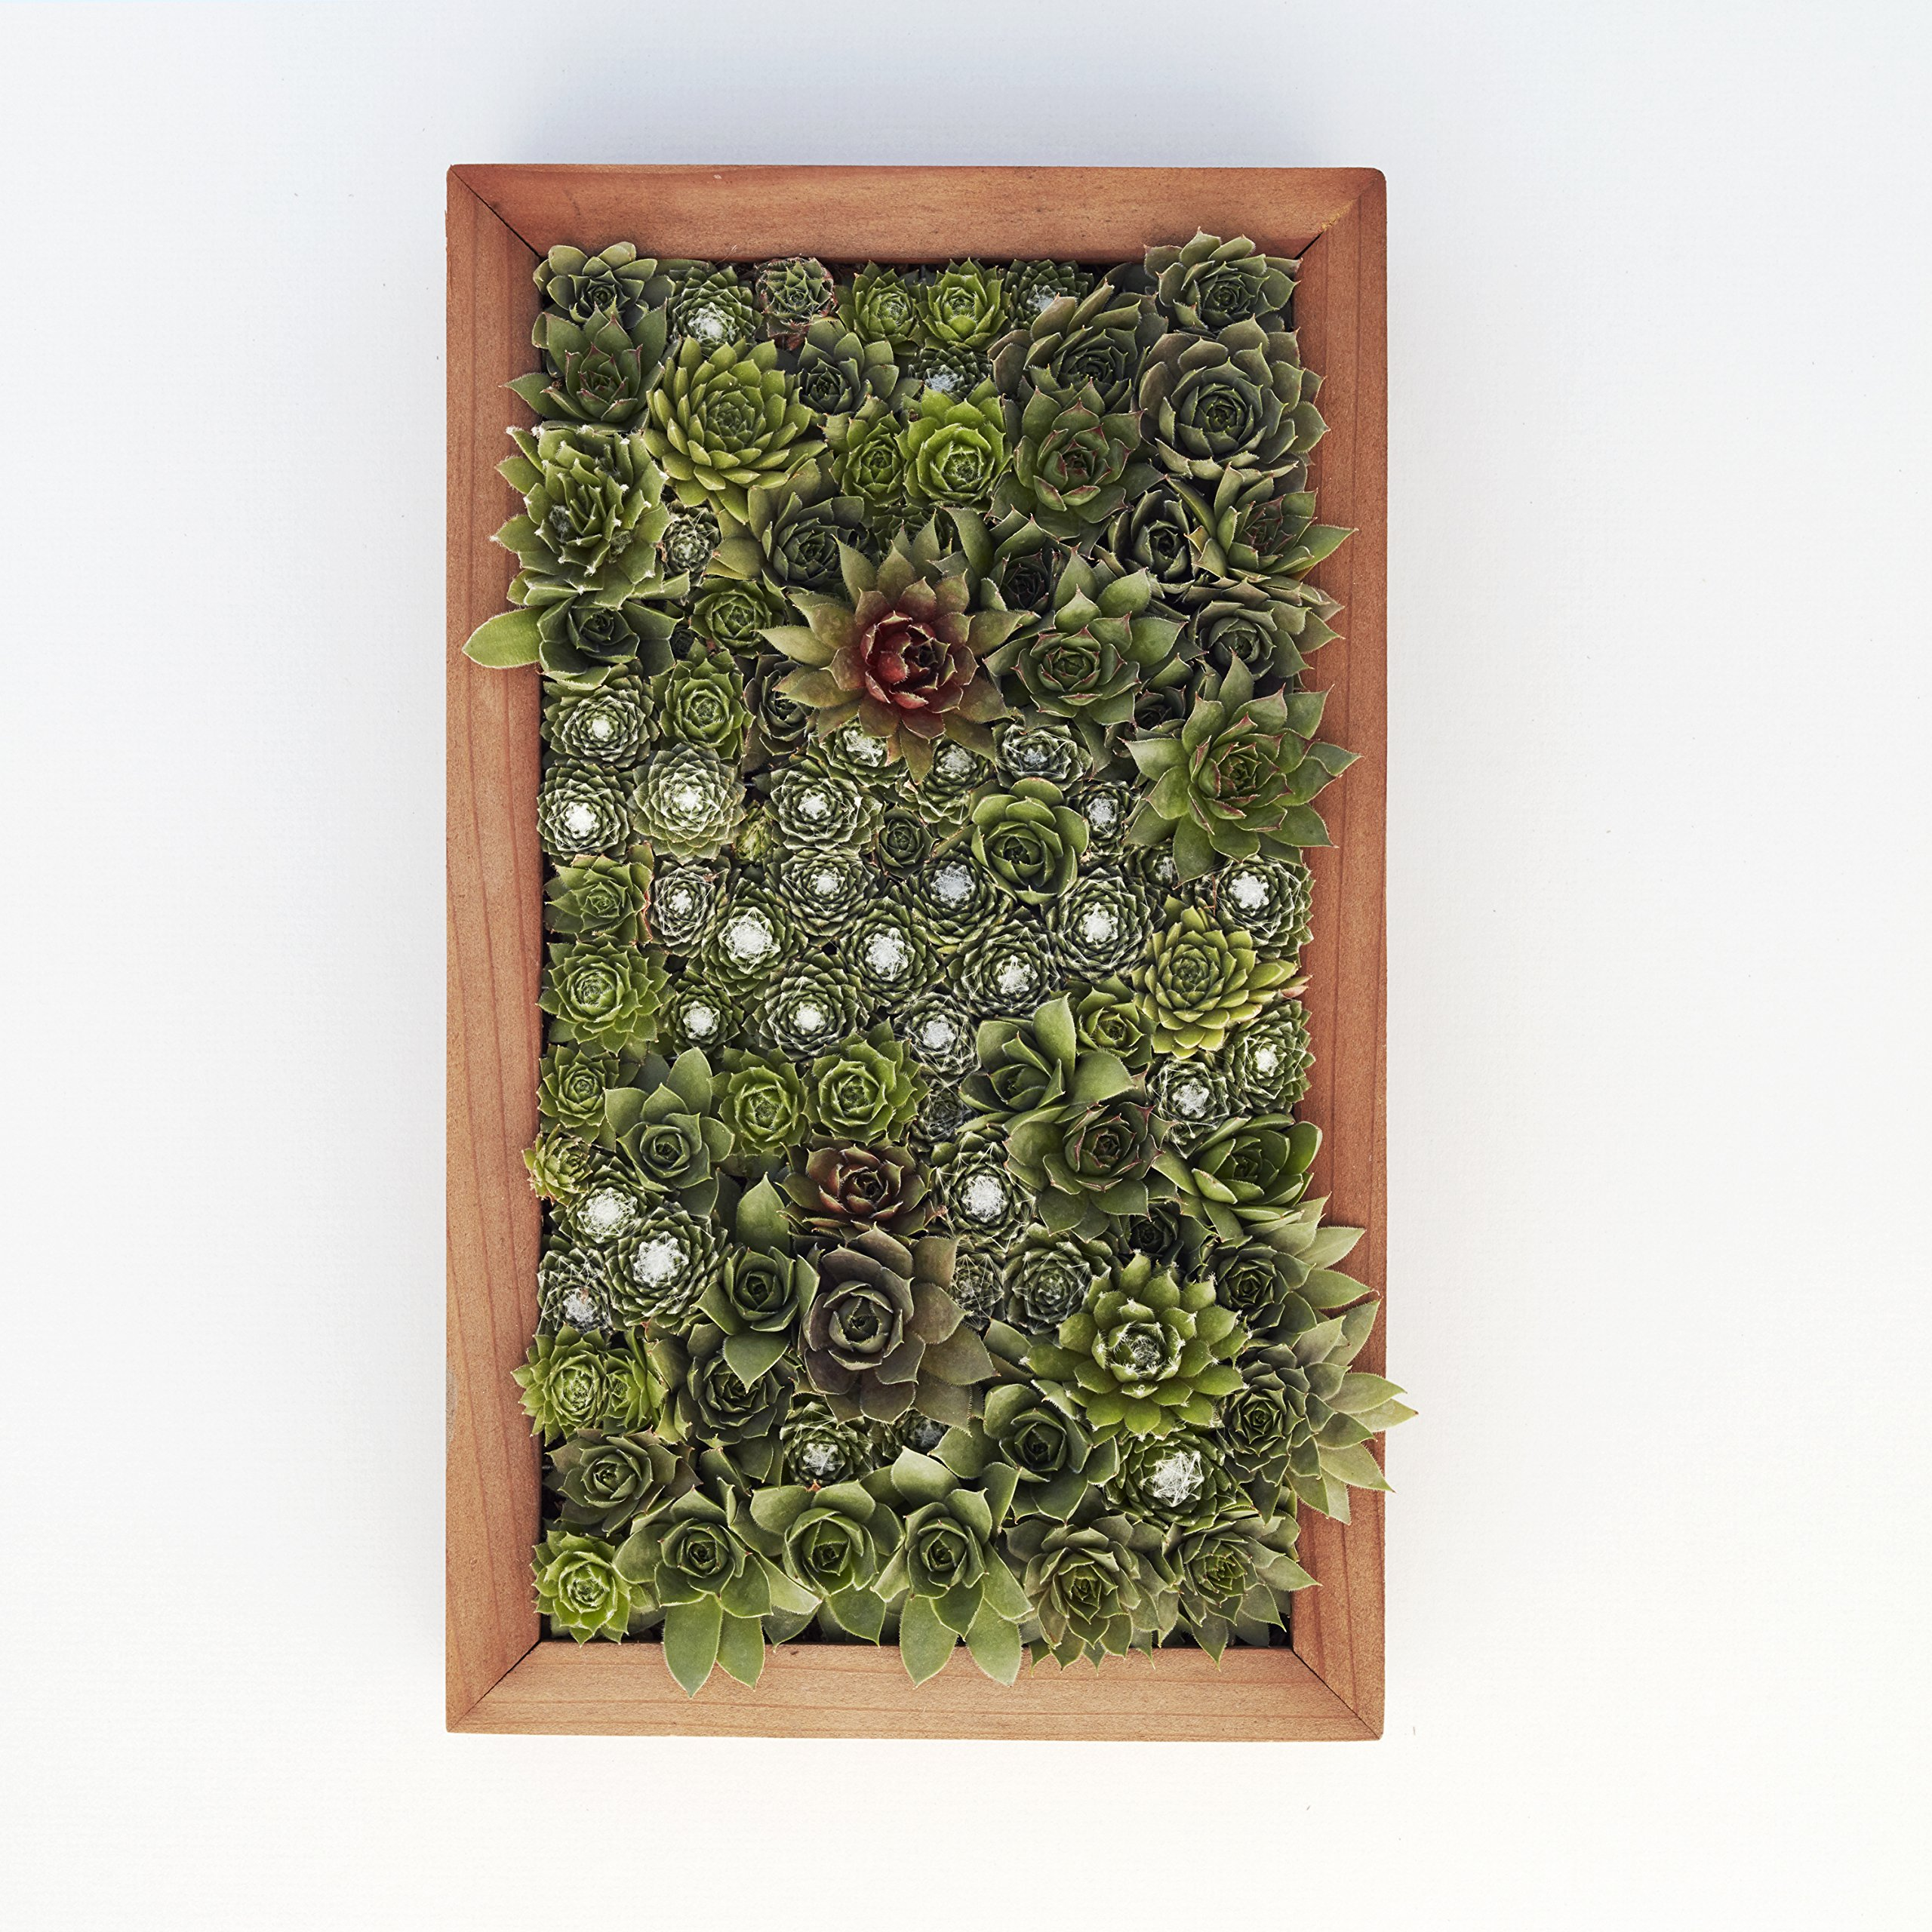 Succulent Gardens Medium Living Picture Planter DIY Kit, 6'' x 12'' Frame, Multicolor by Succulent Gardens (Image #6)